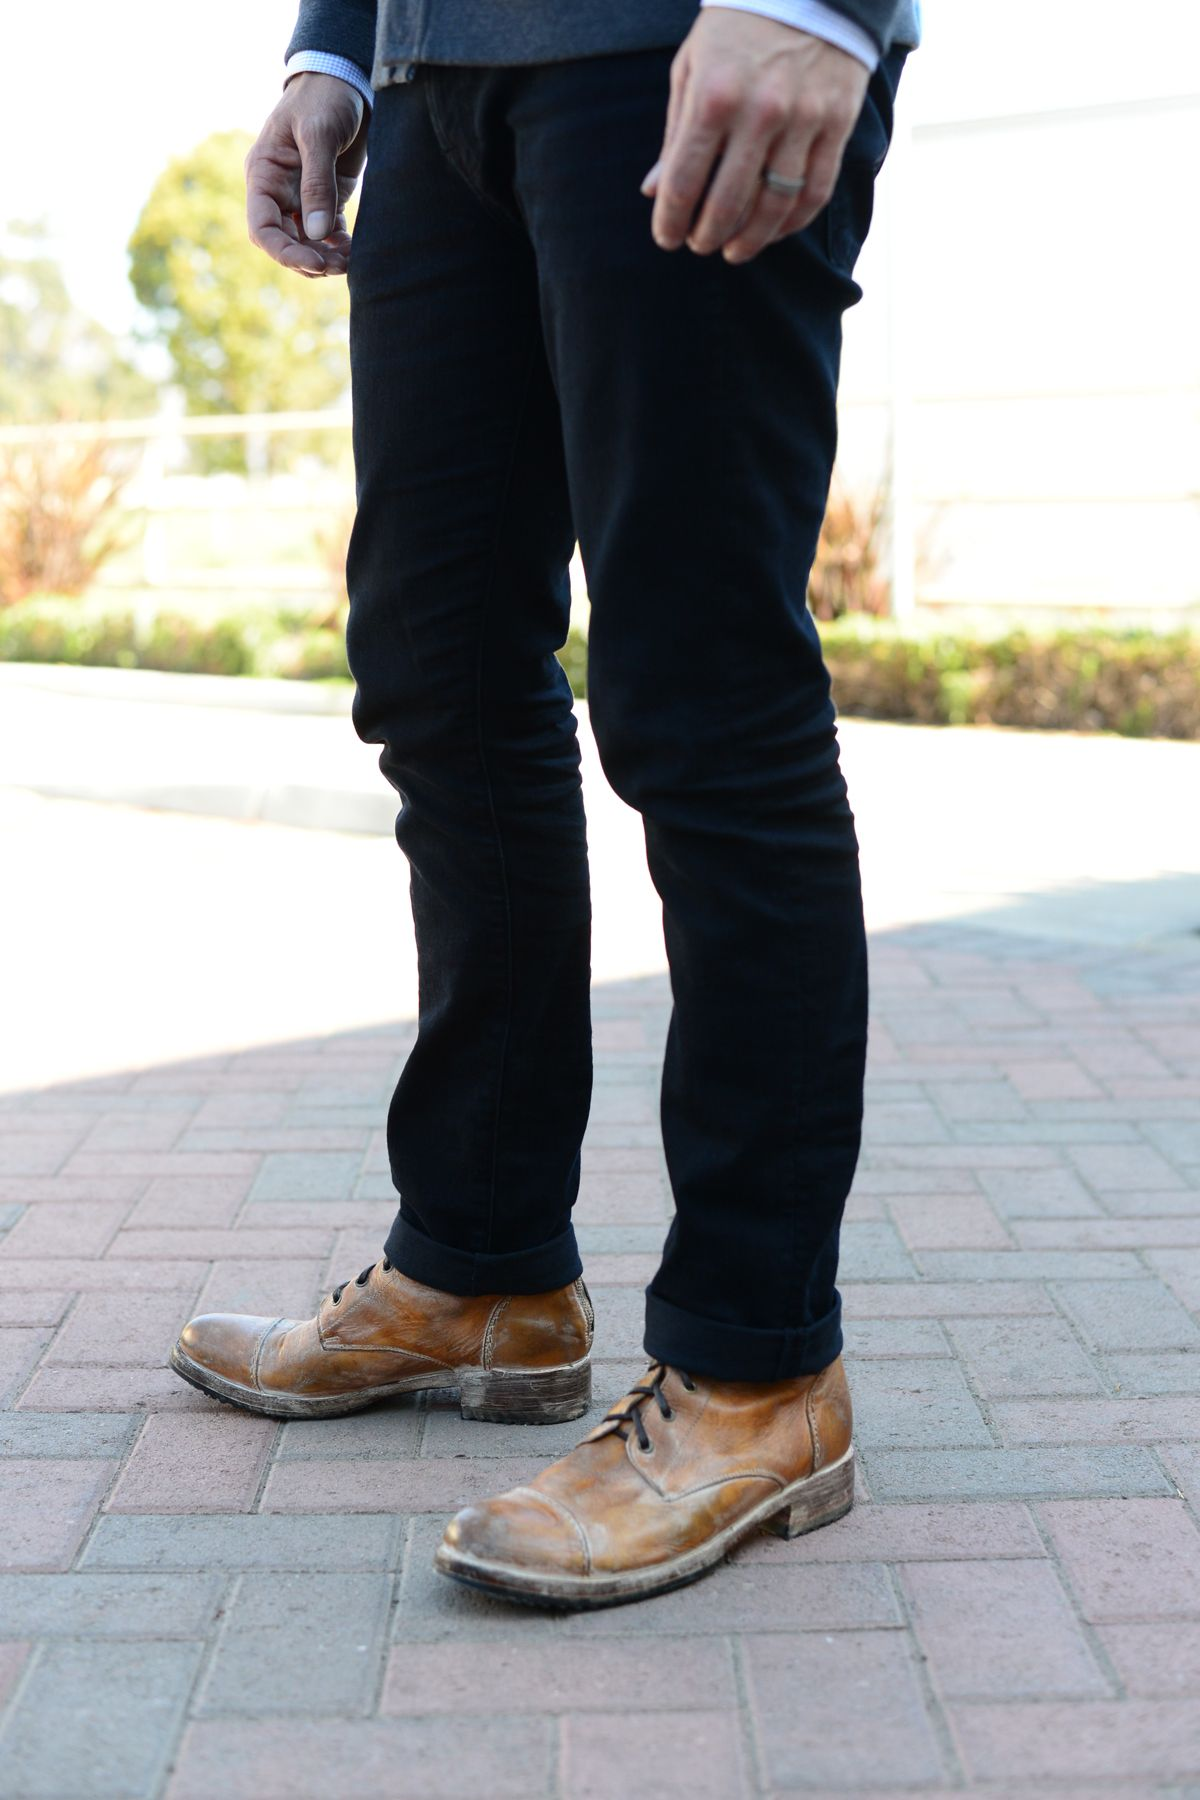 7 For All Mankind skinny jeans + Bed Stu Protege boots